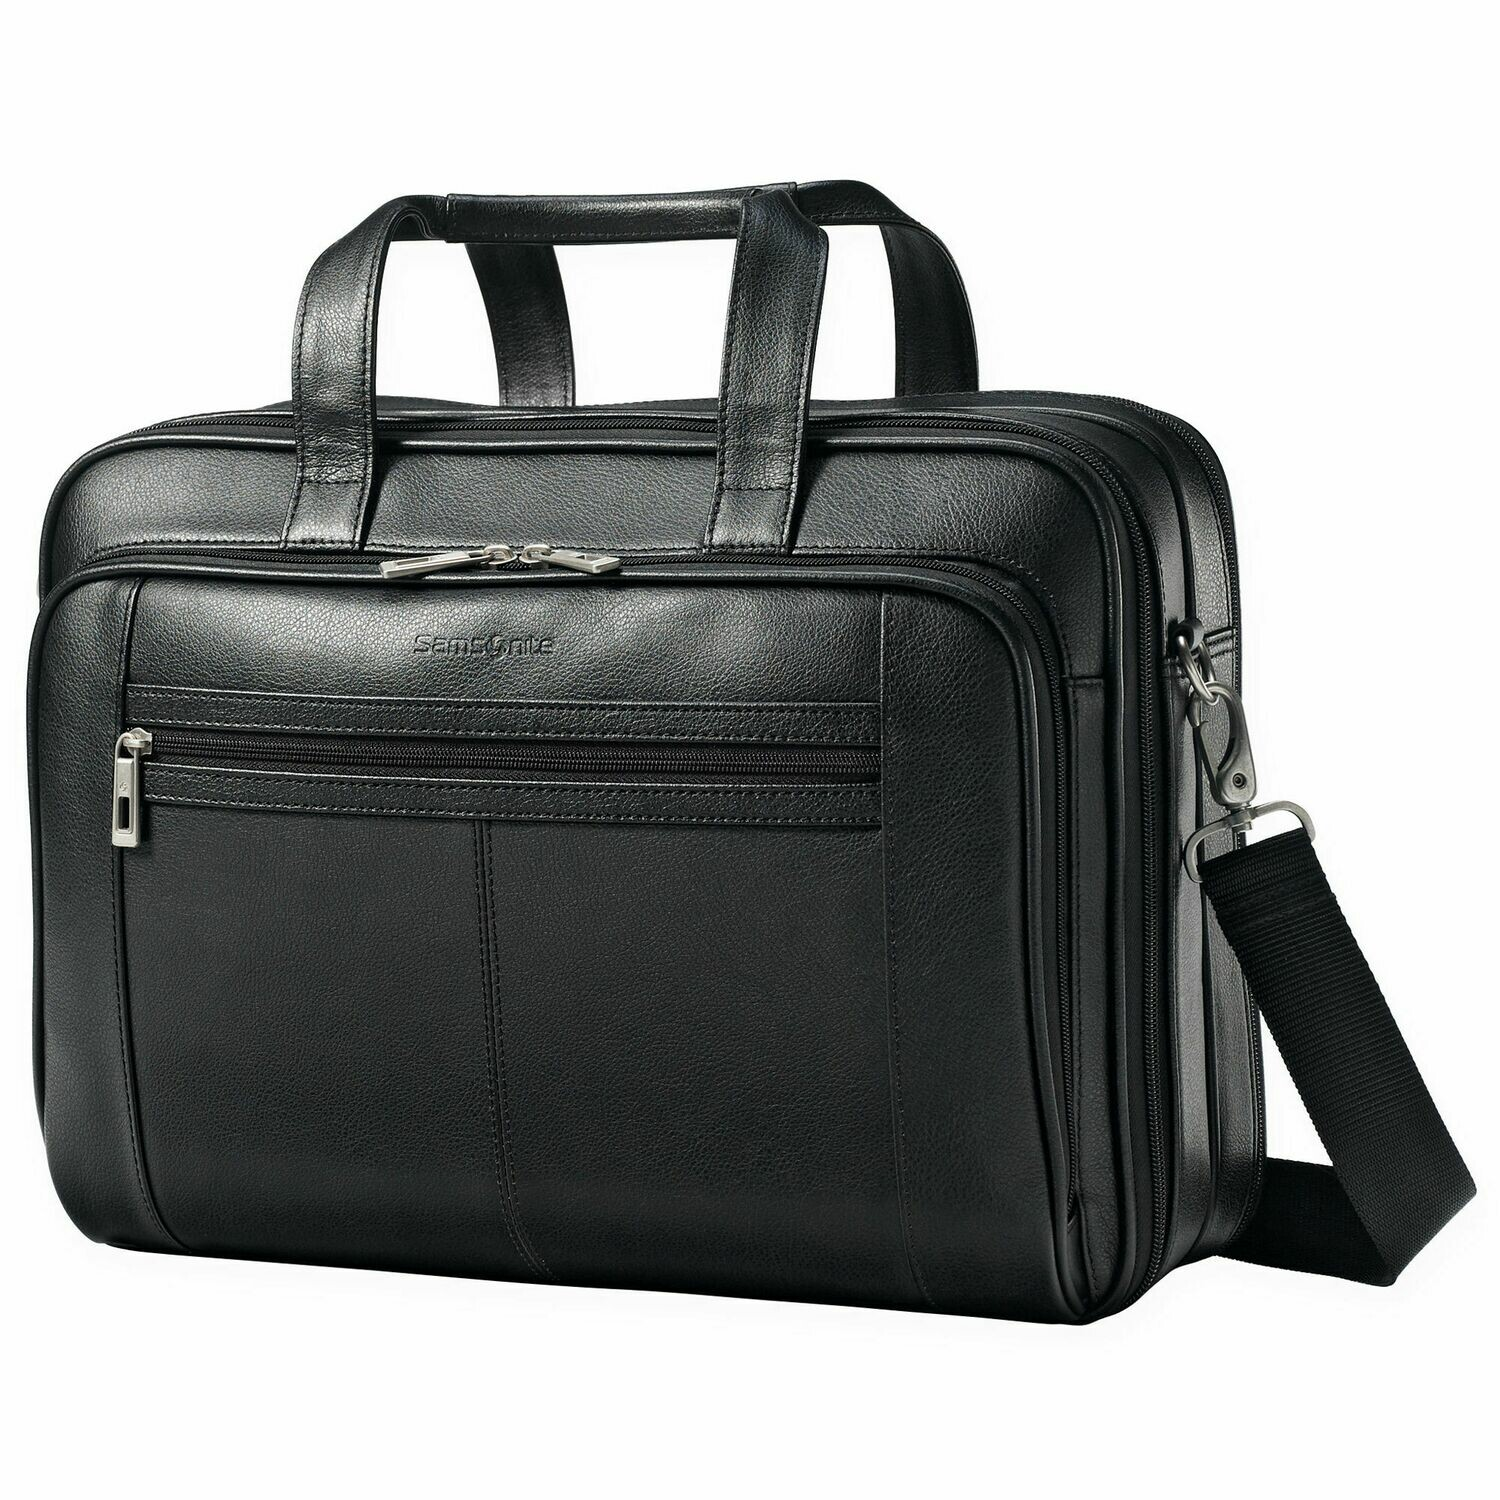 Samsonite 43122-1041 Leather Business Case - Fits up to 15.6 Screen